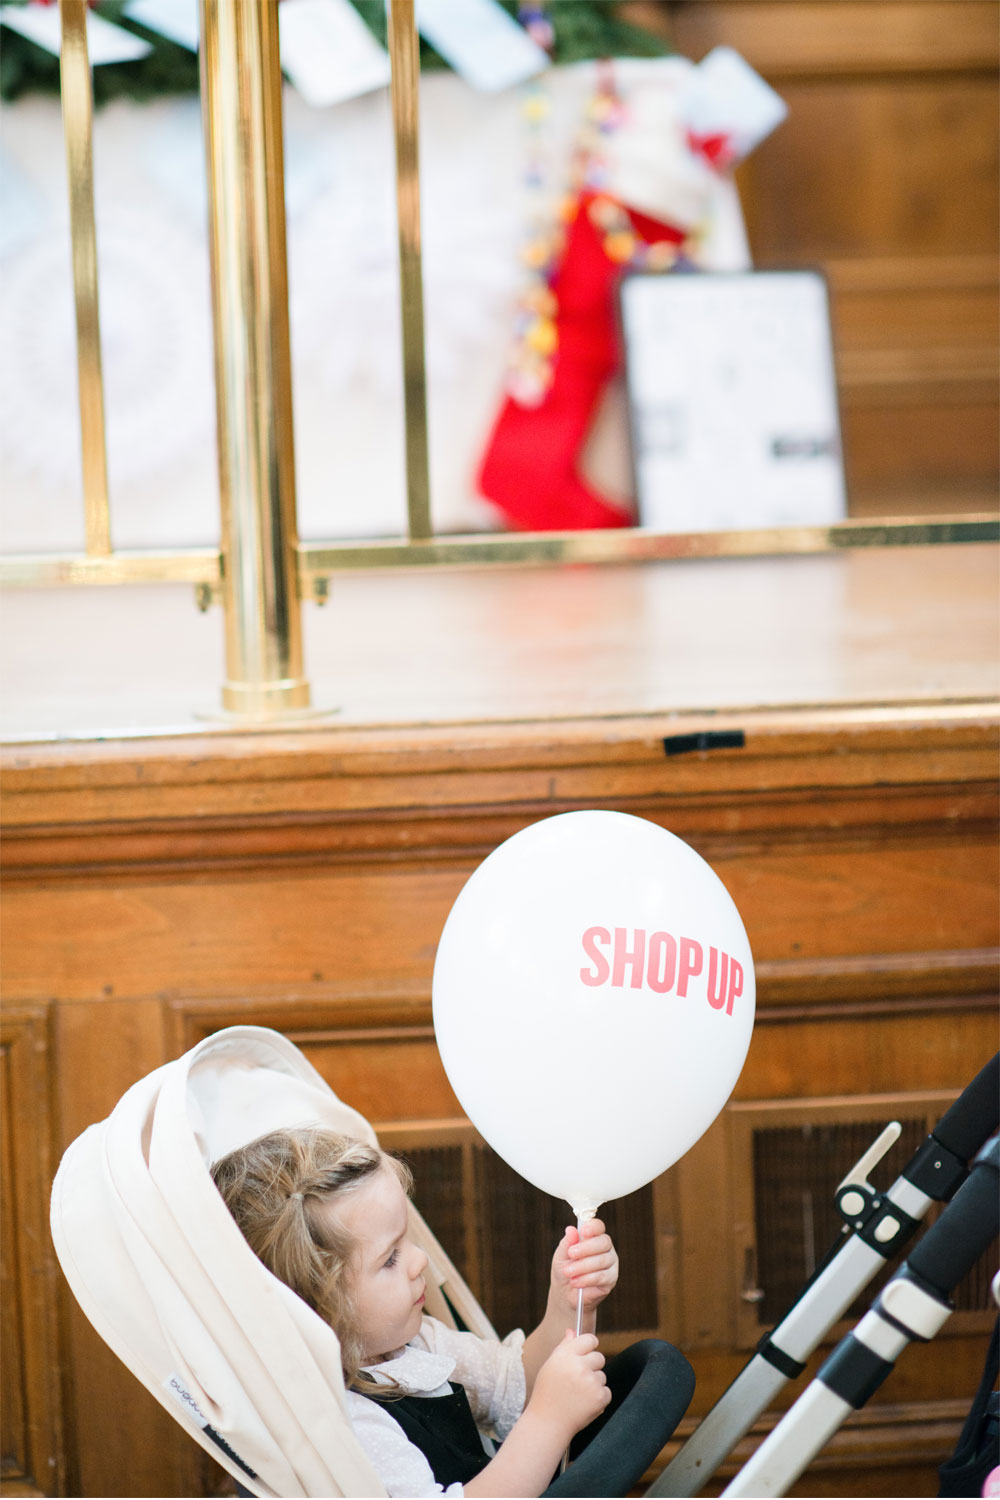 baby-balloon-shopup-london